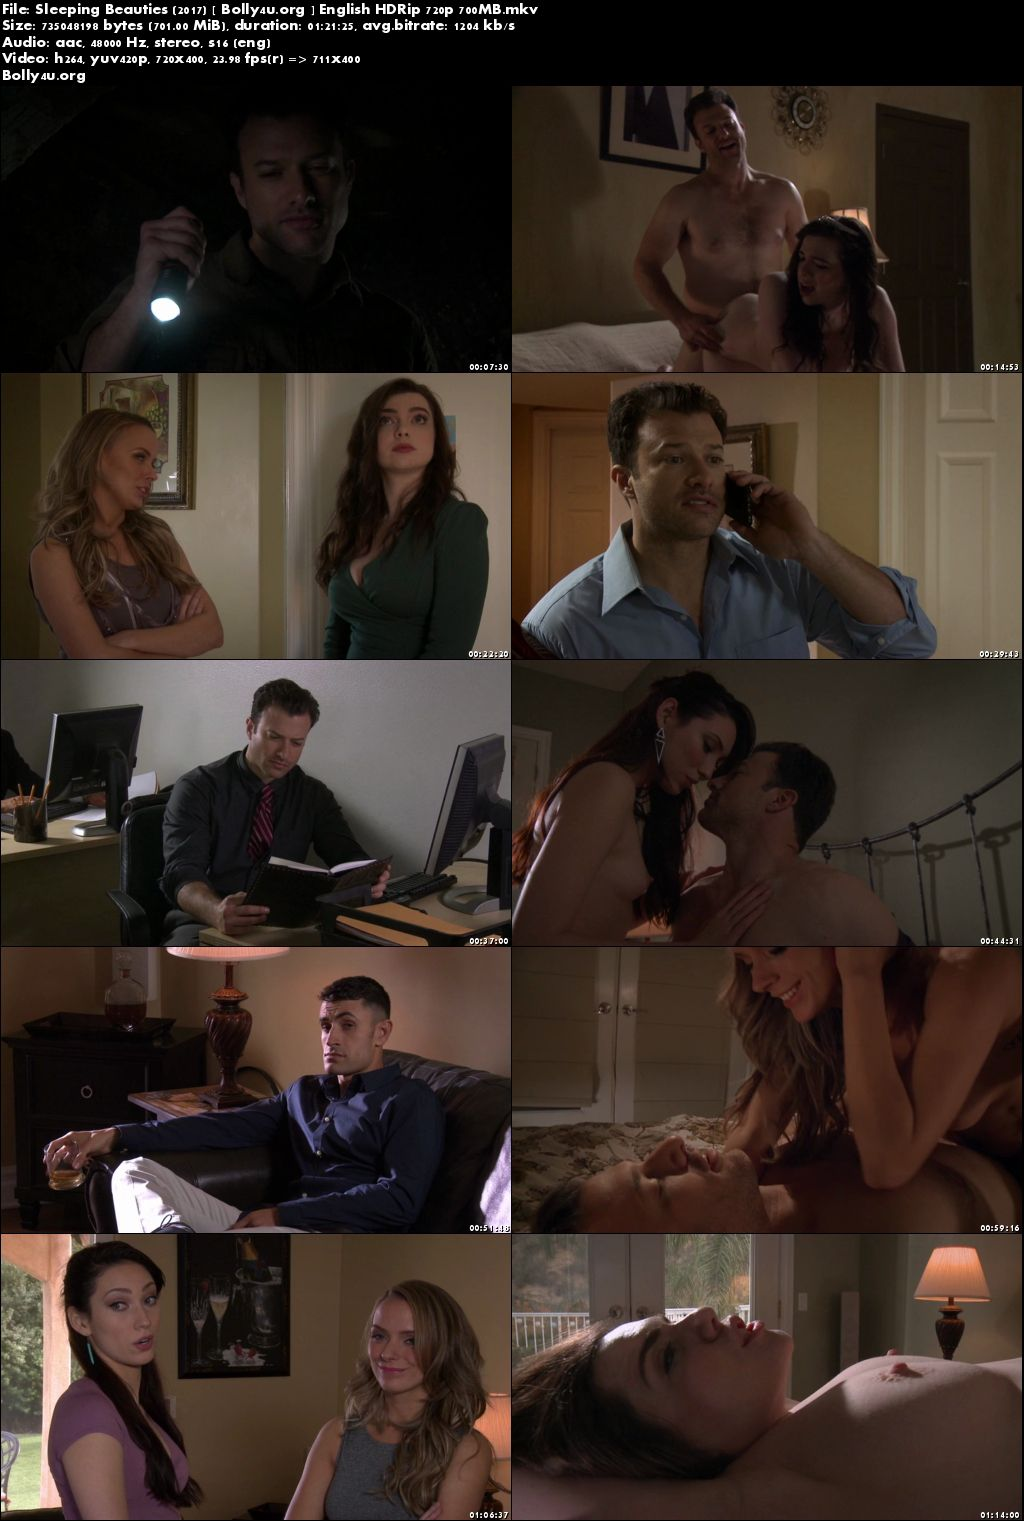 Sleeping Beauties 2017 HDRip 700Mb English Movie 720p Download